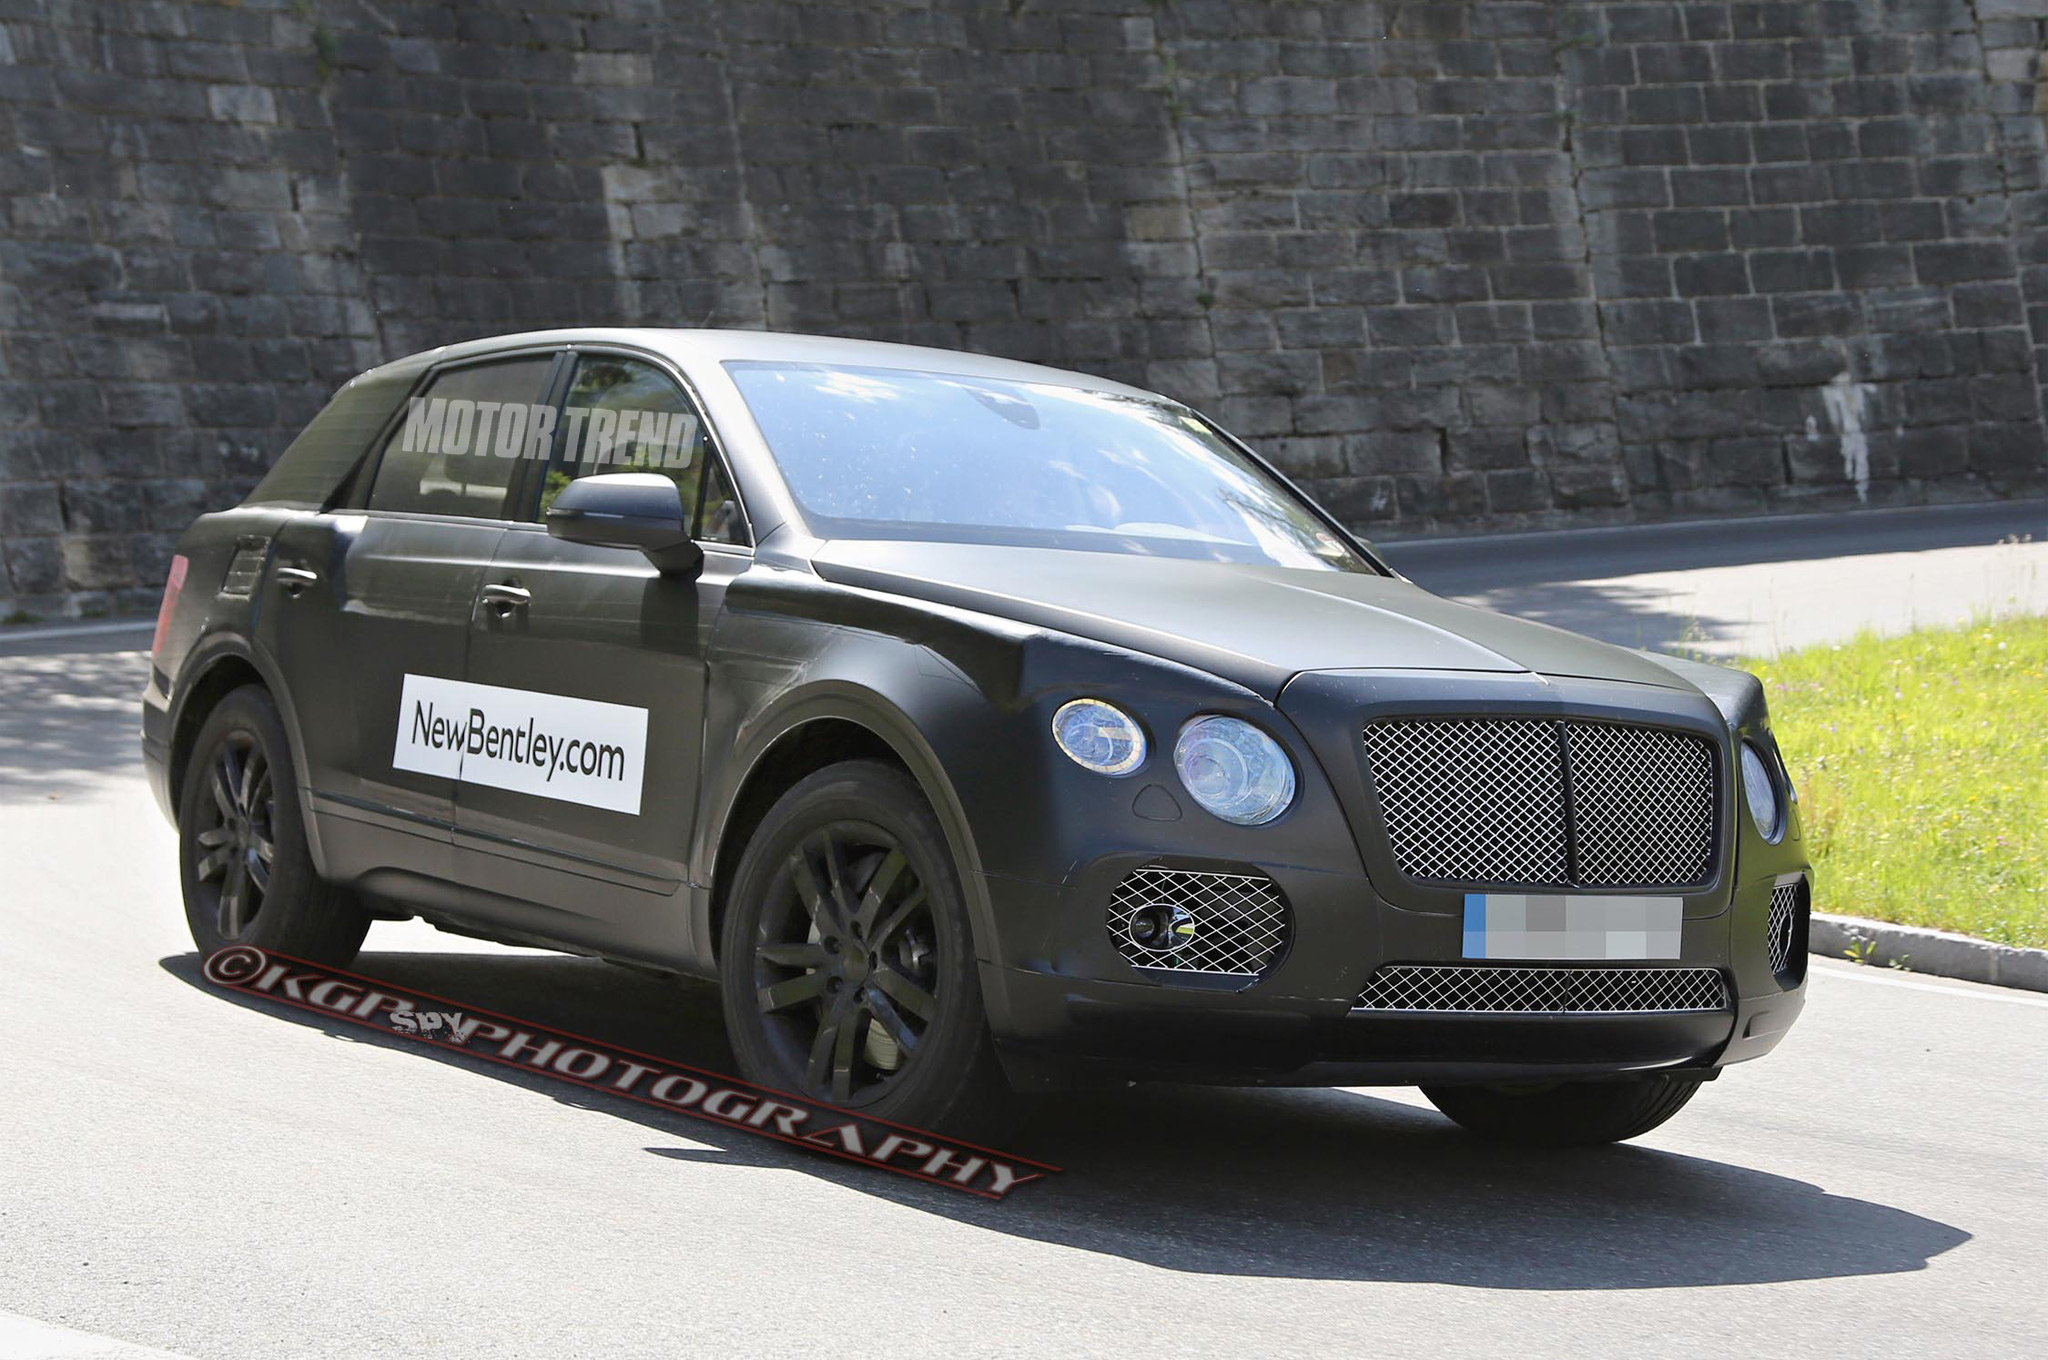 Spied: Bentley SUV Prototype Sports Continental GT Face